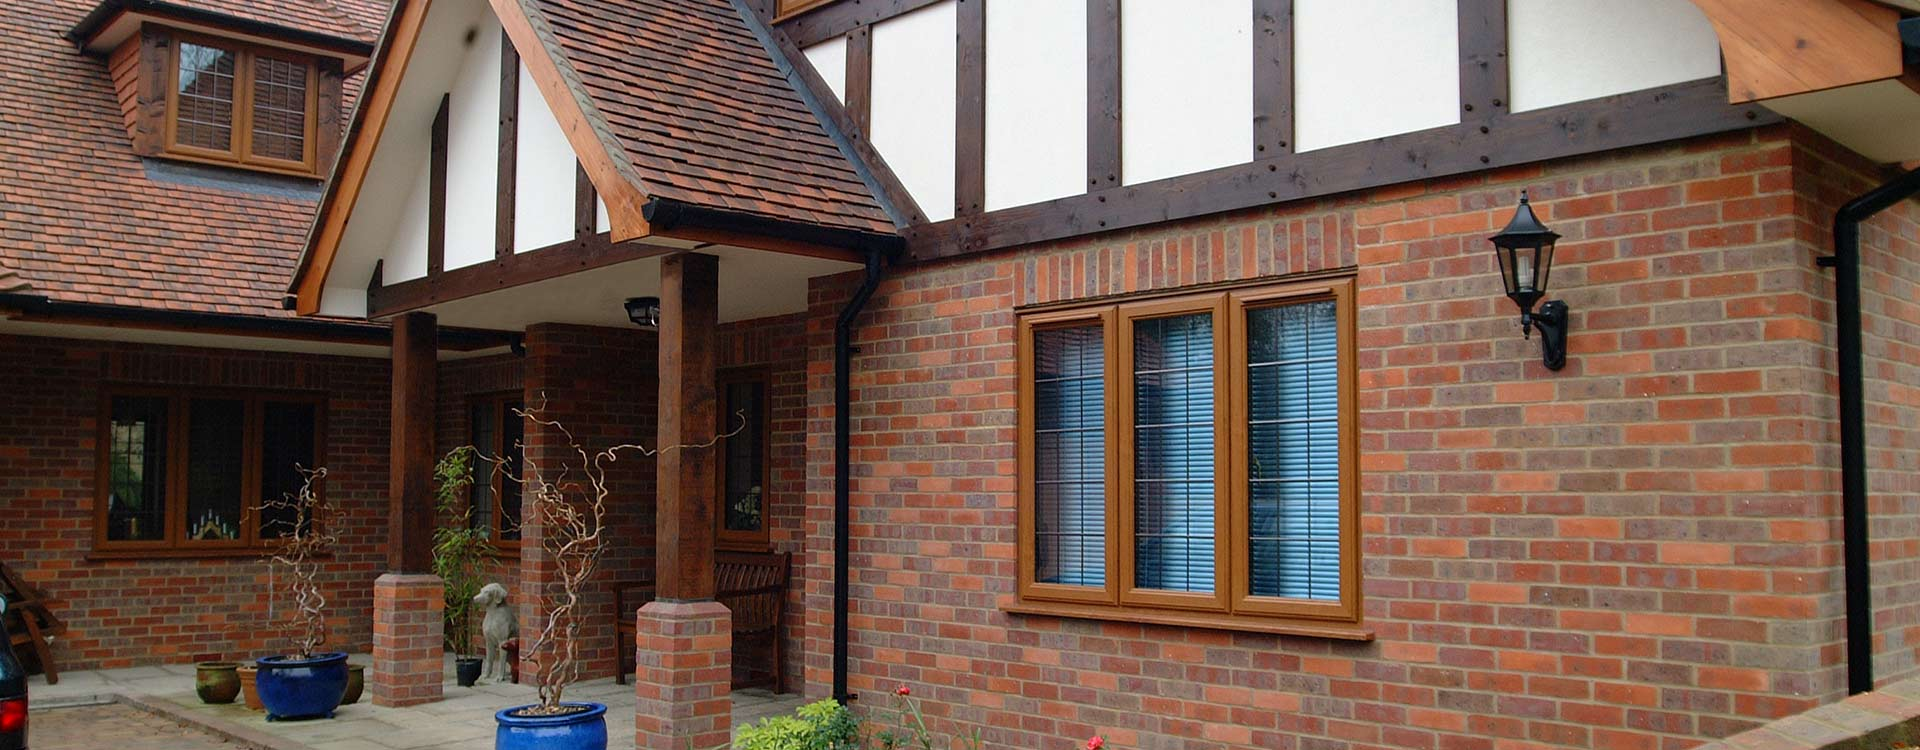 A and K Home Improvements - Windows, Doors and Conservatories Installation, Suffolk, Essex, Colchester